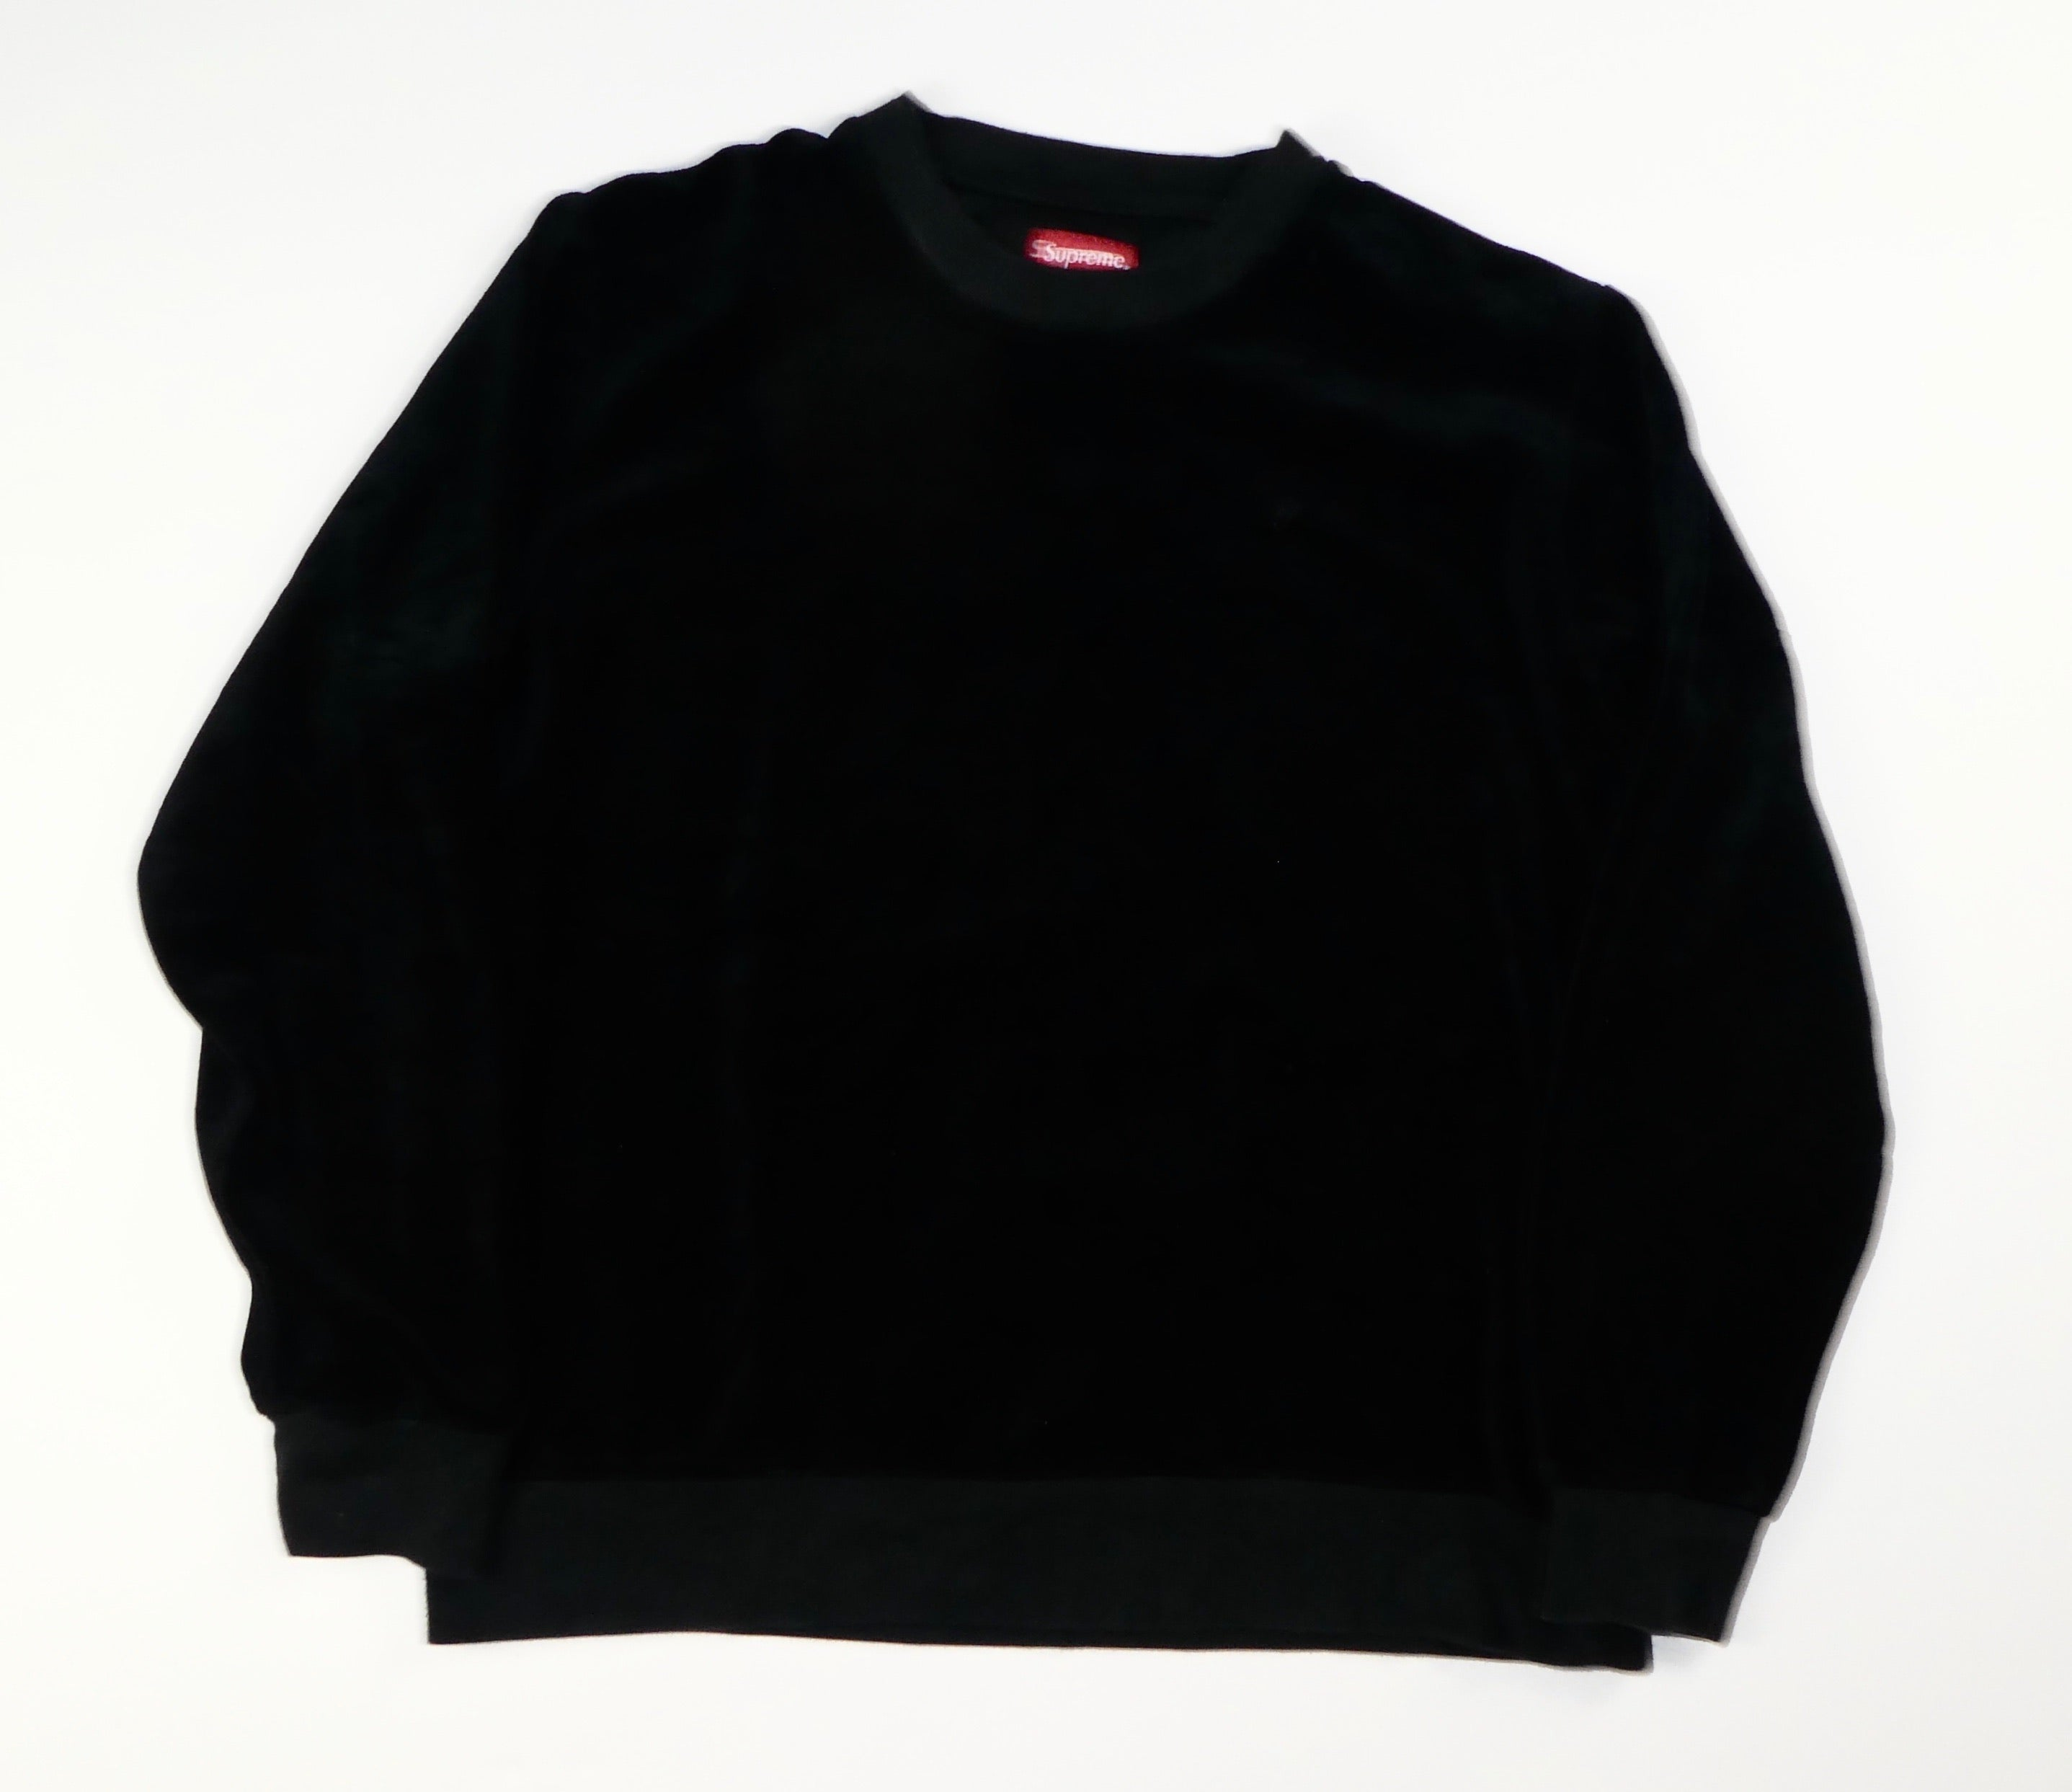 Supreme Velour Crewneck Sweatshirt- Medium